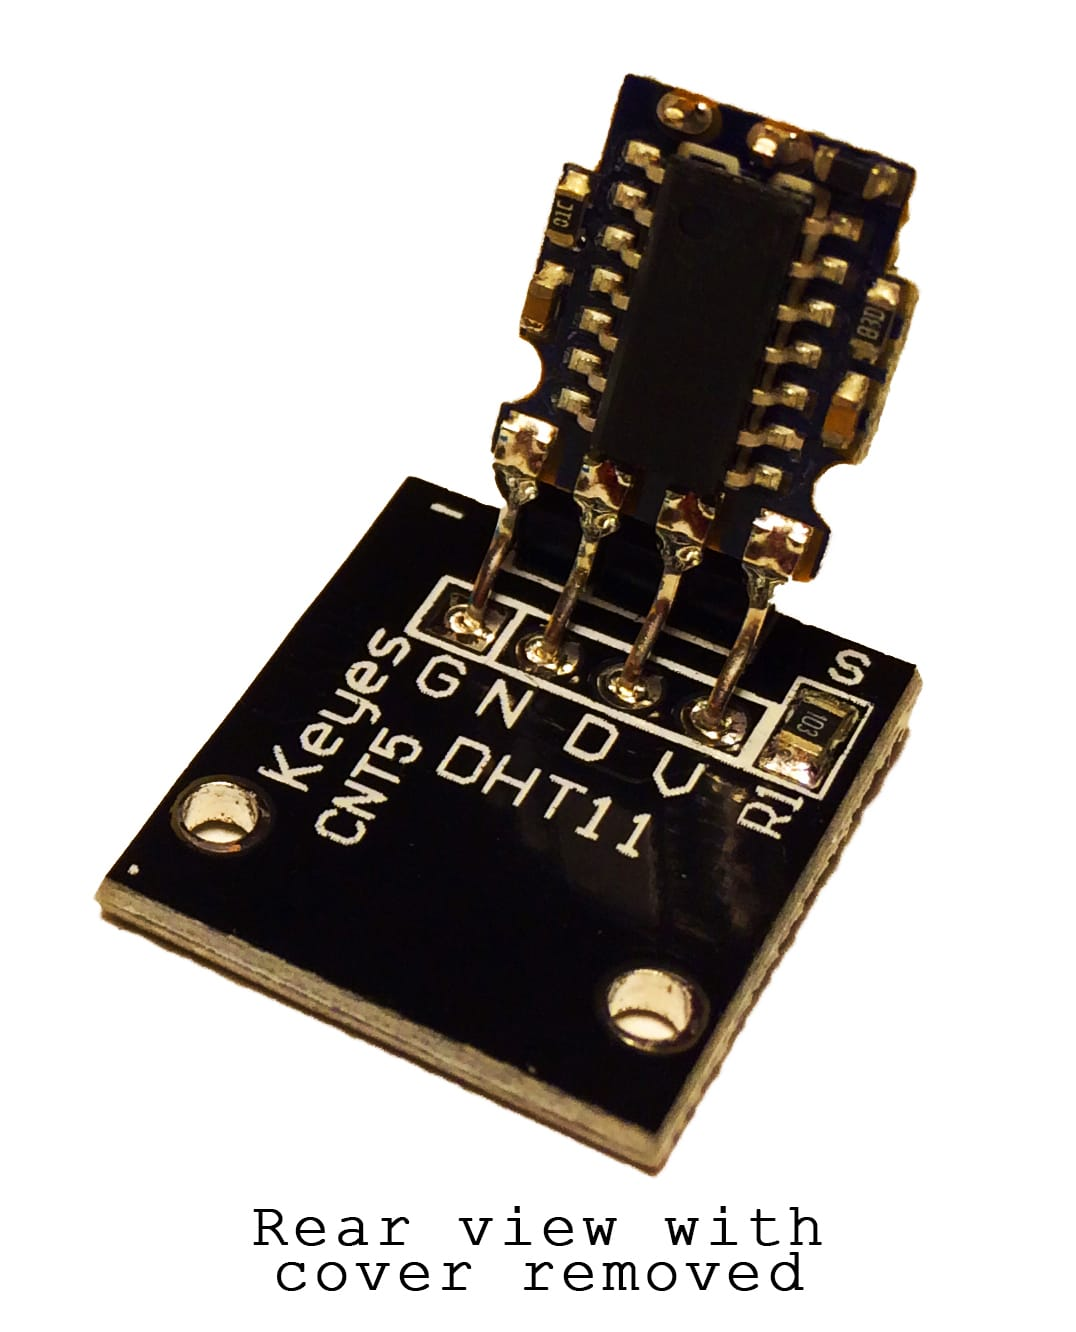 DHT11 Temperature and Humidity Sensor Inside Back with Cover Removed